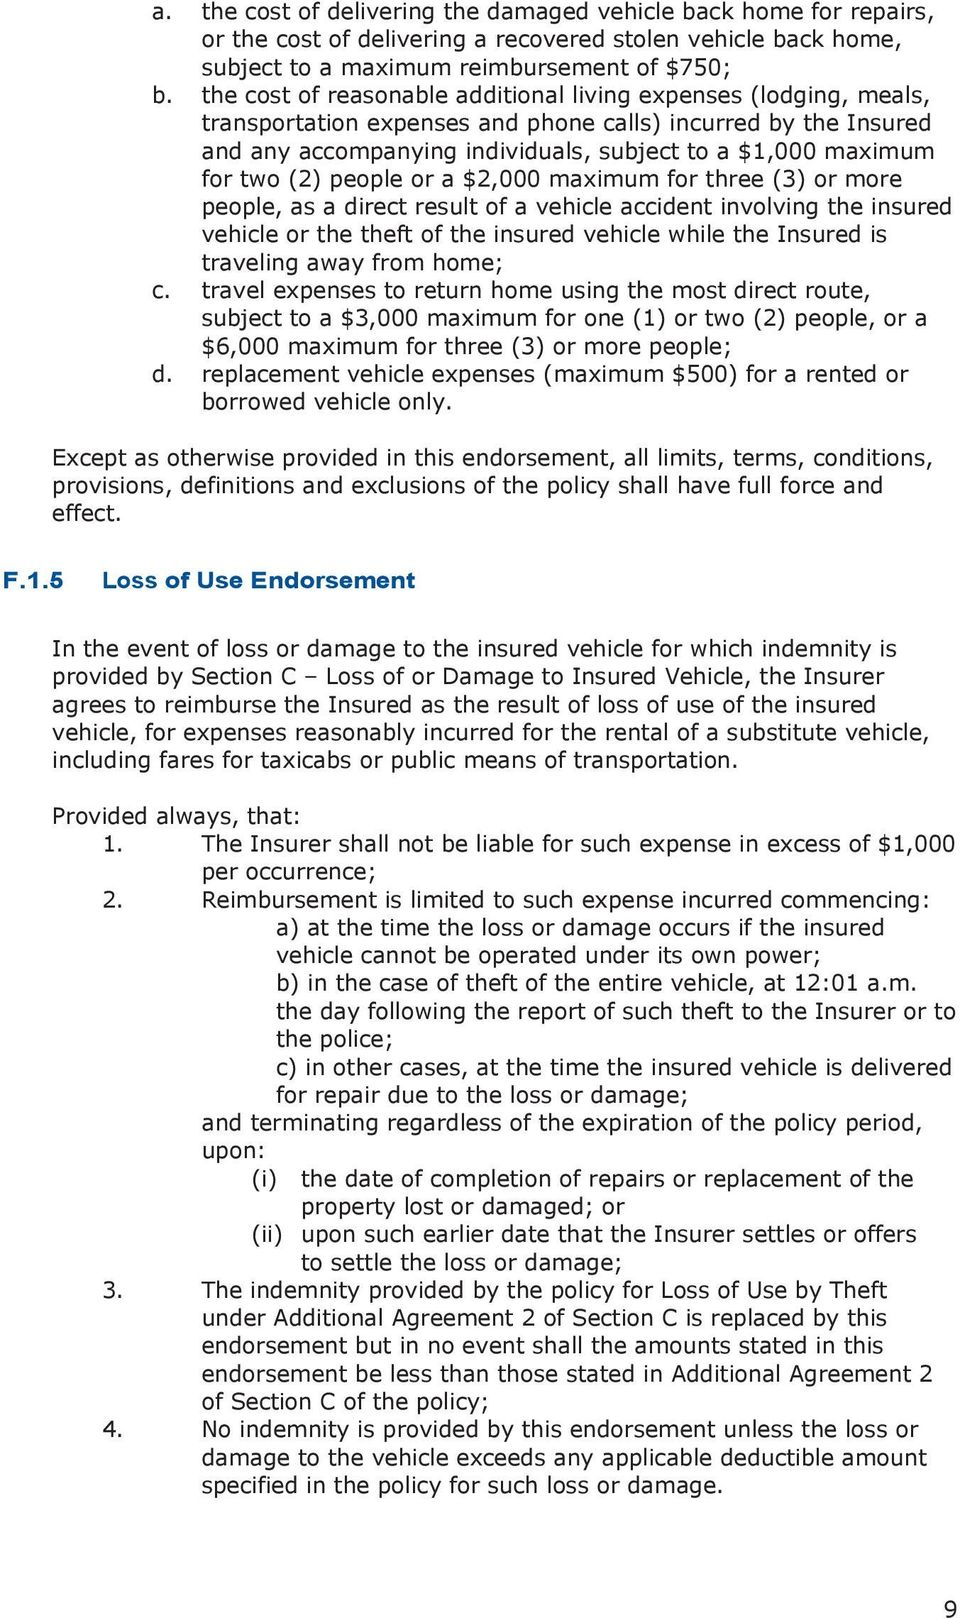 two (2) people or a $2,000 maximum for three (3) or more people, as a direct result of a vehicle accident involving the insured vehicle or the theft of the insured vehicle while the Insured is